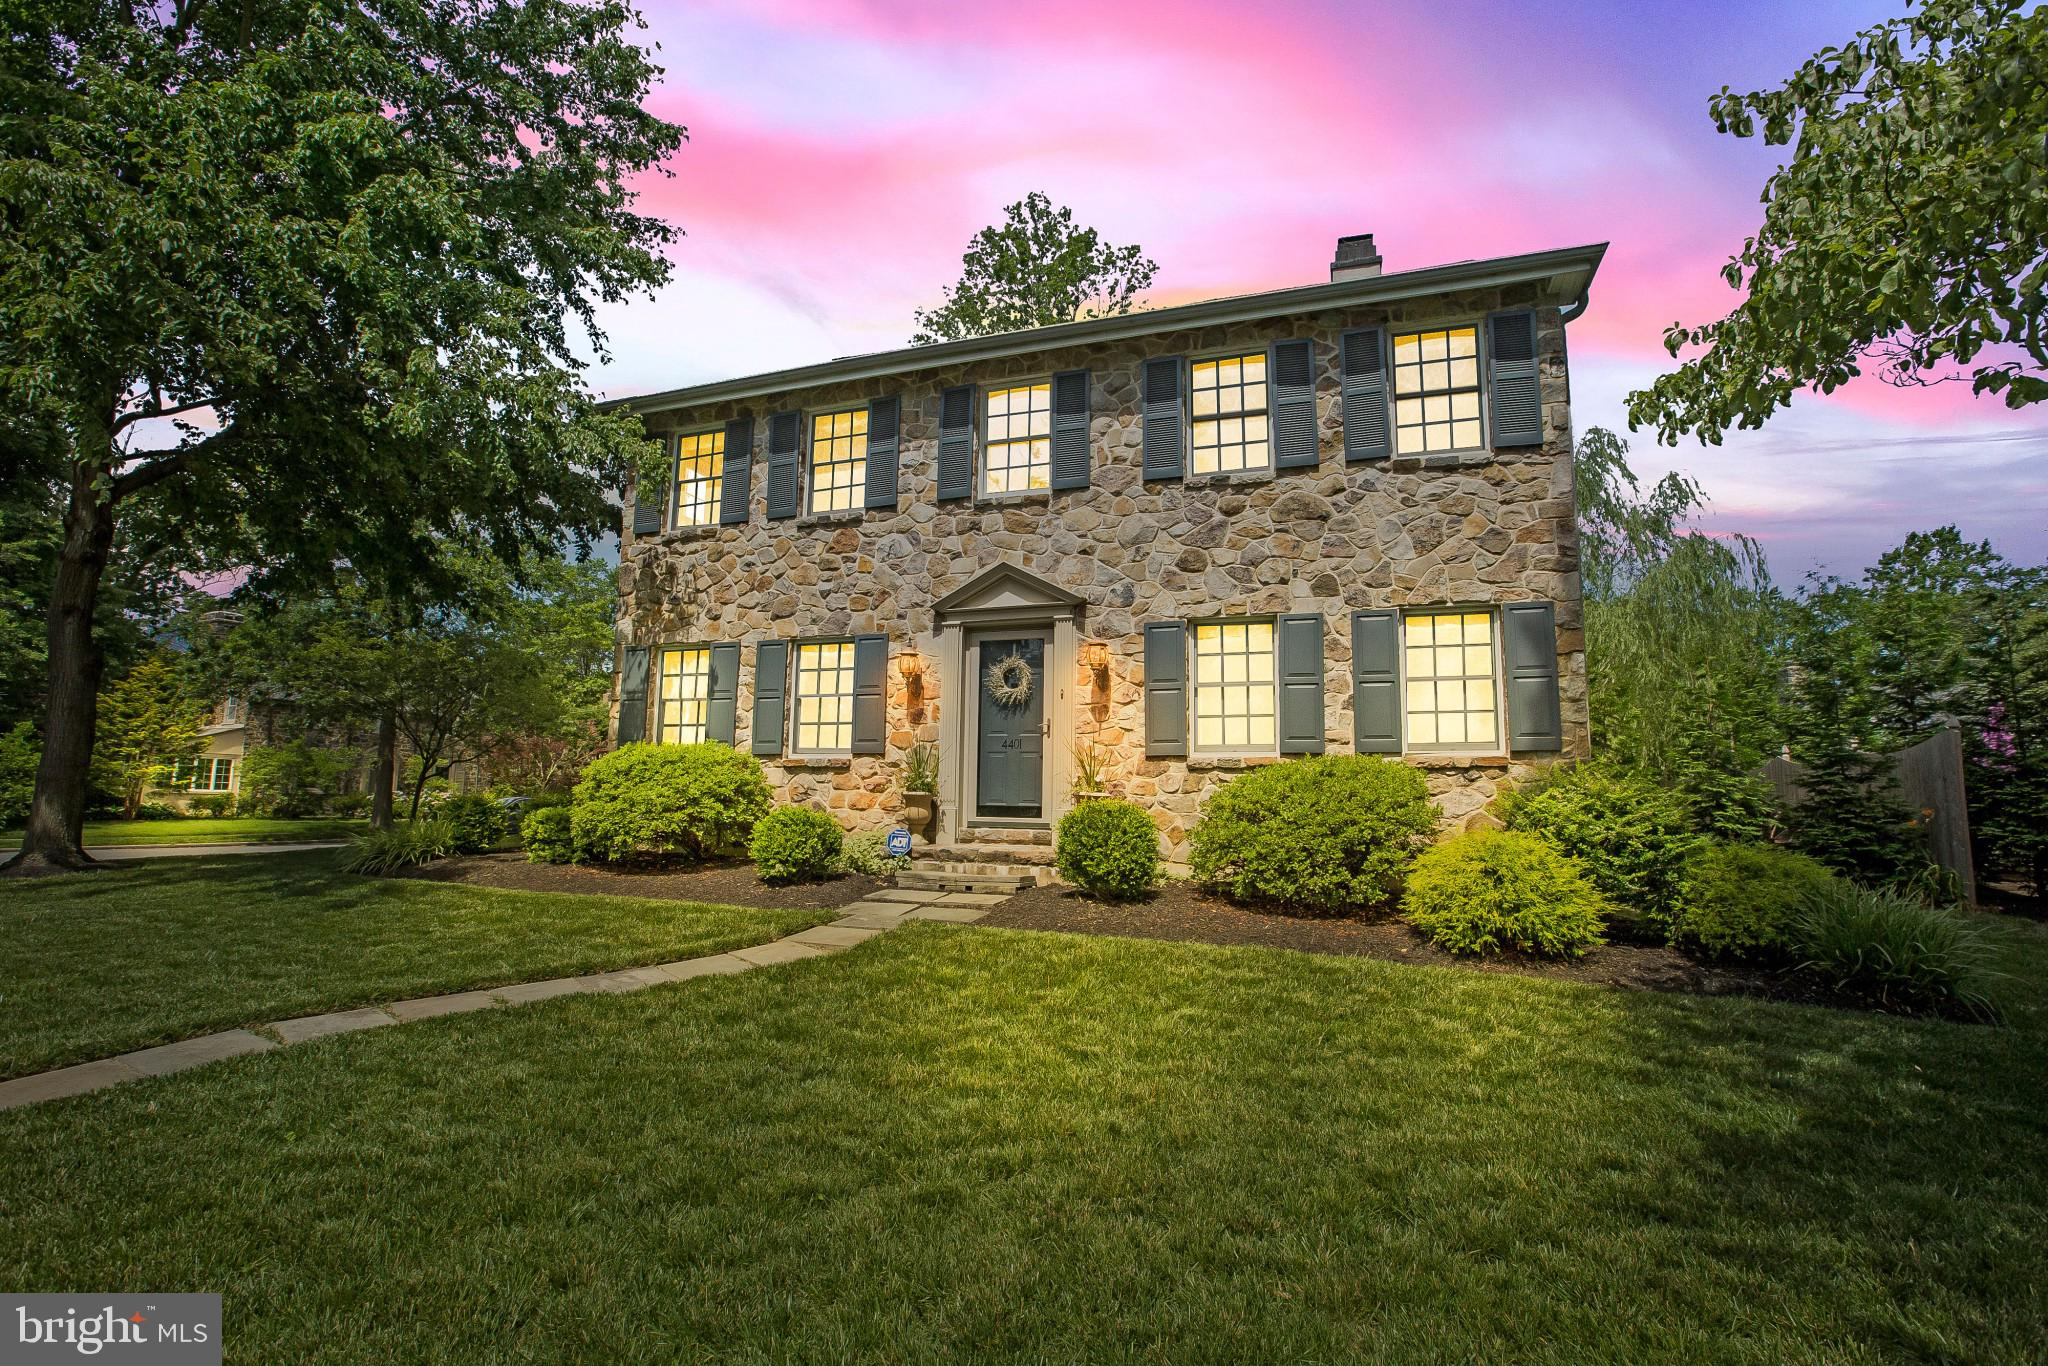 Extraordinary home on Emerson Rd.! Welcome to Brandywine Hills, a picturesque community of winding sidewalks, tall lamp posts and mature-aged trees, and is bordered by Matson Run Park, steps away from Delaware Greenway Trails which connects to Can-do Playground, and 2 blocks from Rockwood Park and Museum. Plus, easy access to I-95, 10 mins. to City of Wilm./Amtrak Train Station and 25 mins. to Phil. Airport. Premium location, park-like setting! Landscaped beds and manicured lawn envelopes this stately stone-front accented with Williamsburg blue shutters 4 B/2.5 bath home, while its positioning on coveted corner lot offers sweeping views of serene streets. Home~s updates include new hardwood floors in FR/Bath (2020) renovated master bath/painted shutters/front door (2019) new sump pump/carpet in guest/master BR/office/new glass slider/seamless caulk between exterior stucco/stone (2018) new subway backsplash/painted kitchen cabinets/new privacy fence, pavers and stairs off FR (2017) new side patio/custom built-ins/ceiling fans (2016) new landscaping, paint, blinds and more (2015/4). Step inside of golden hardwood floors in volume-ceiling foyer with overlook. Almond-hued color paint makes home lighter and airier, and wide hall ahead easily houses sofa table and looks through home to back glass-pane door. To right is nice-size LR that is inviting and guest-friendly. Paint color shifts to mocha color with extra-wide crown molding accent. Striking and savvy 2-sided see-through marble FP beckons all for conversation and cheer, and furniture is placed open to foyer reinforcing no-expiration invitation. To left of foyer is DR with continued hardwoods, here and throughout, and extra-wide crown molding. Its sweet basil color paint is soothing and 2 windows on front/1 window on side walls replicate window placement in LR, creating balance. Simple space, subtle elegance! Stretch of extended countertop in upgraded kitchen serves as coffee/beverage bar, and built-in wine rack abov